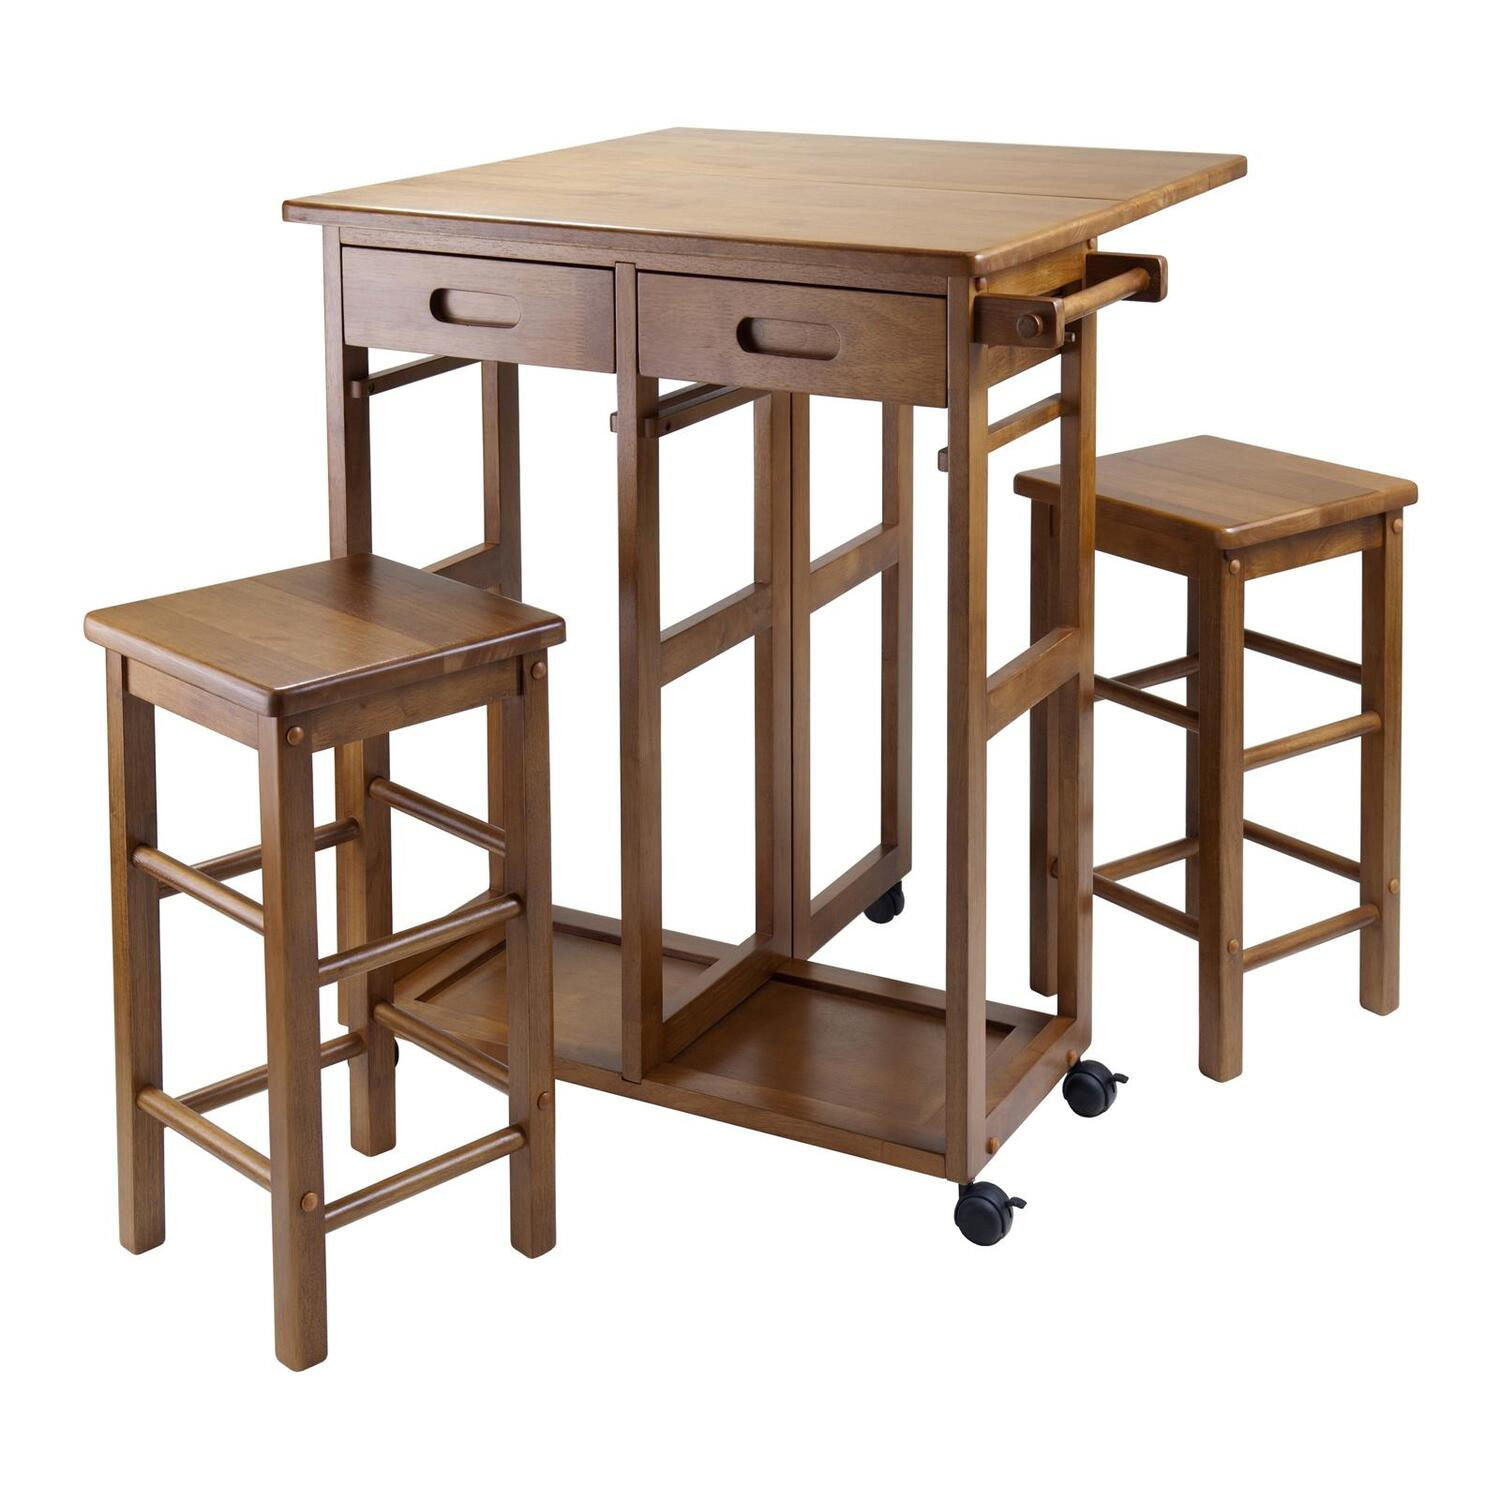 Kitchen Space Savers Design1000658 Space Saver Kitchen Table And Chairs Small